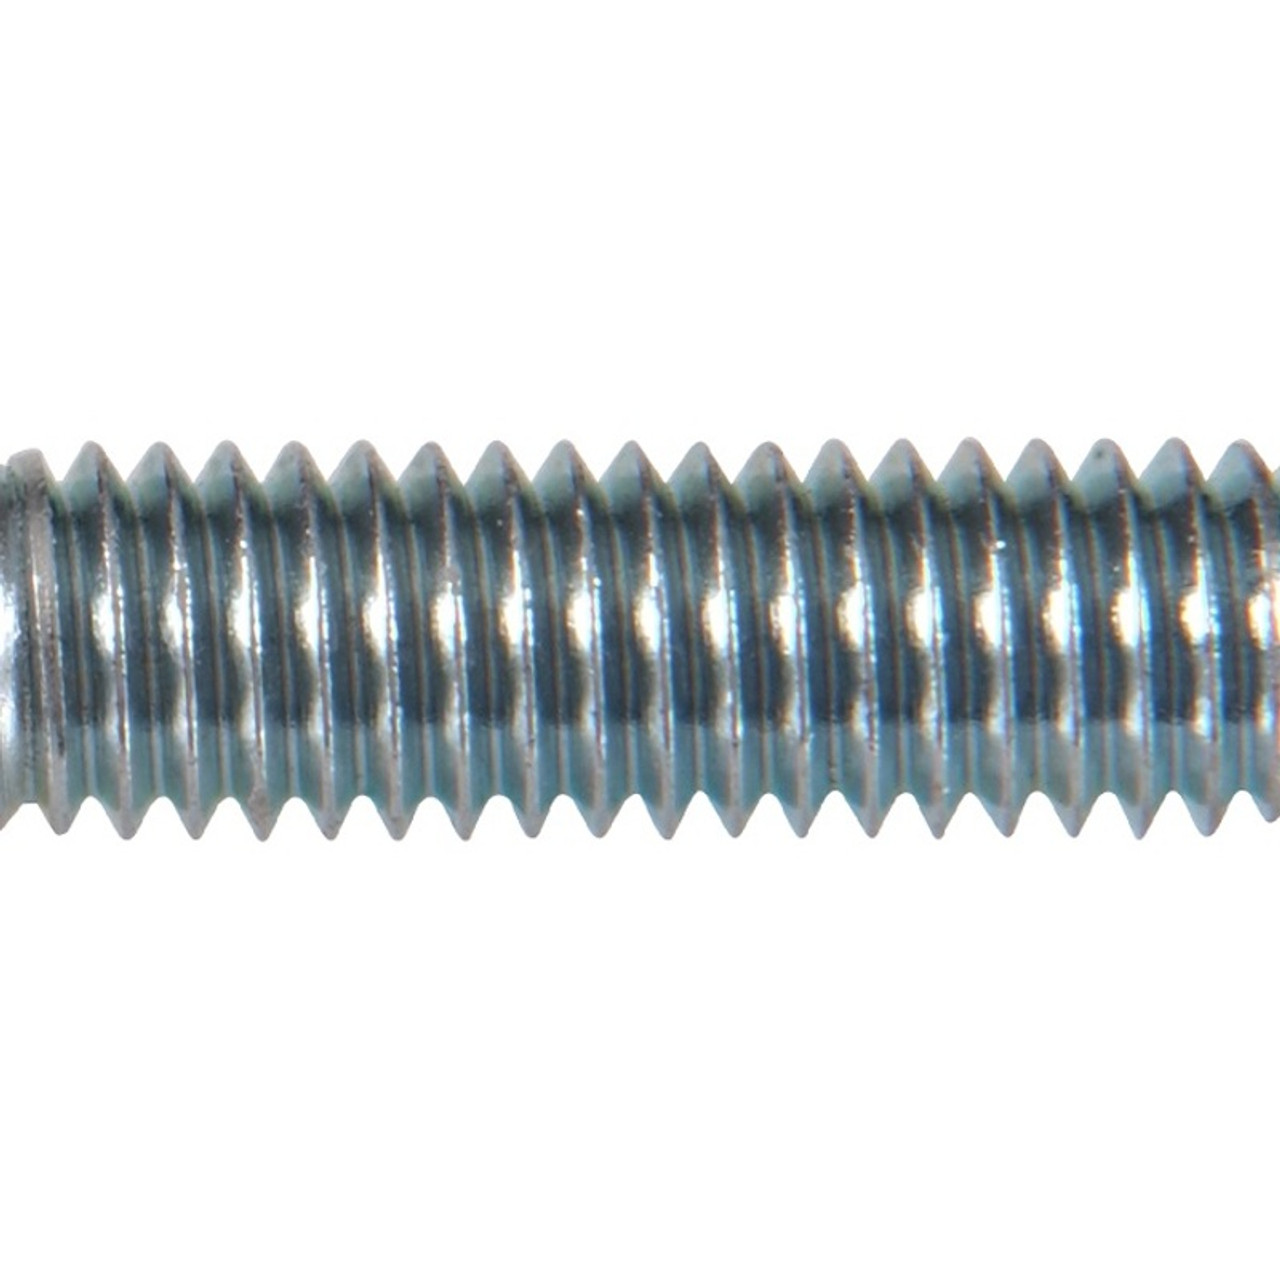 Acme Threaded Rod 36